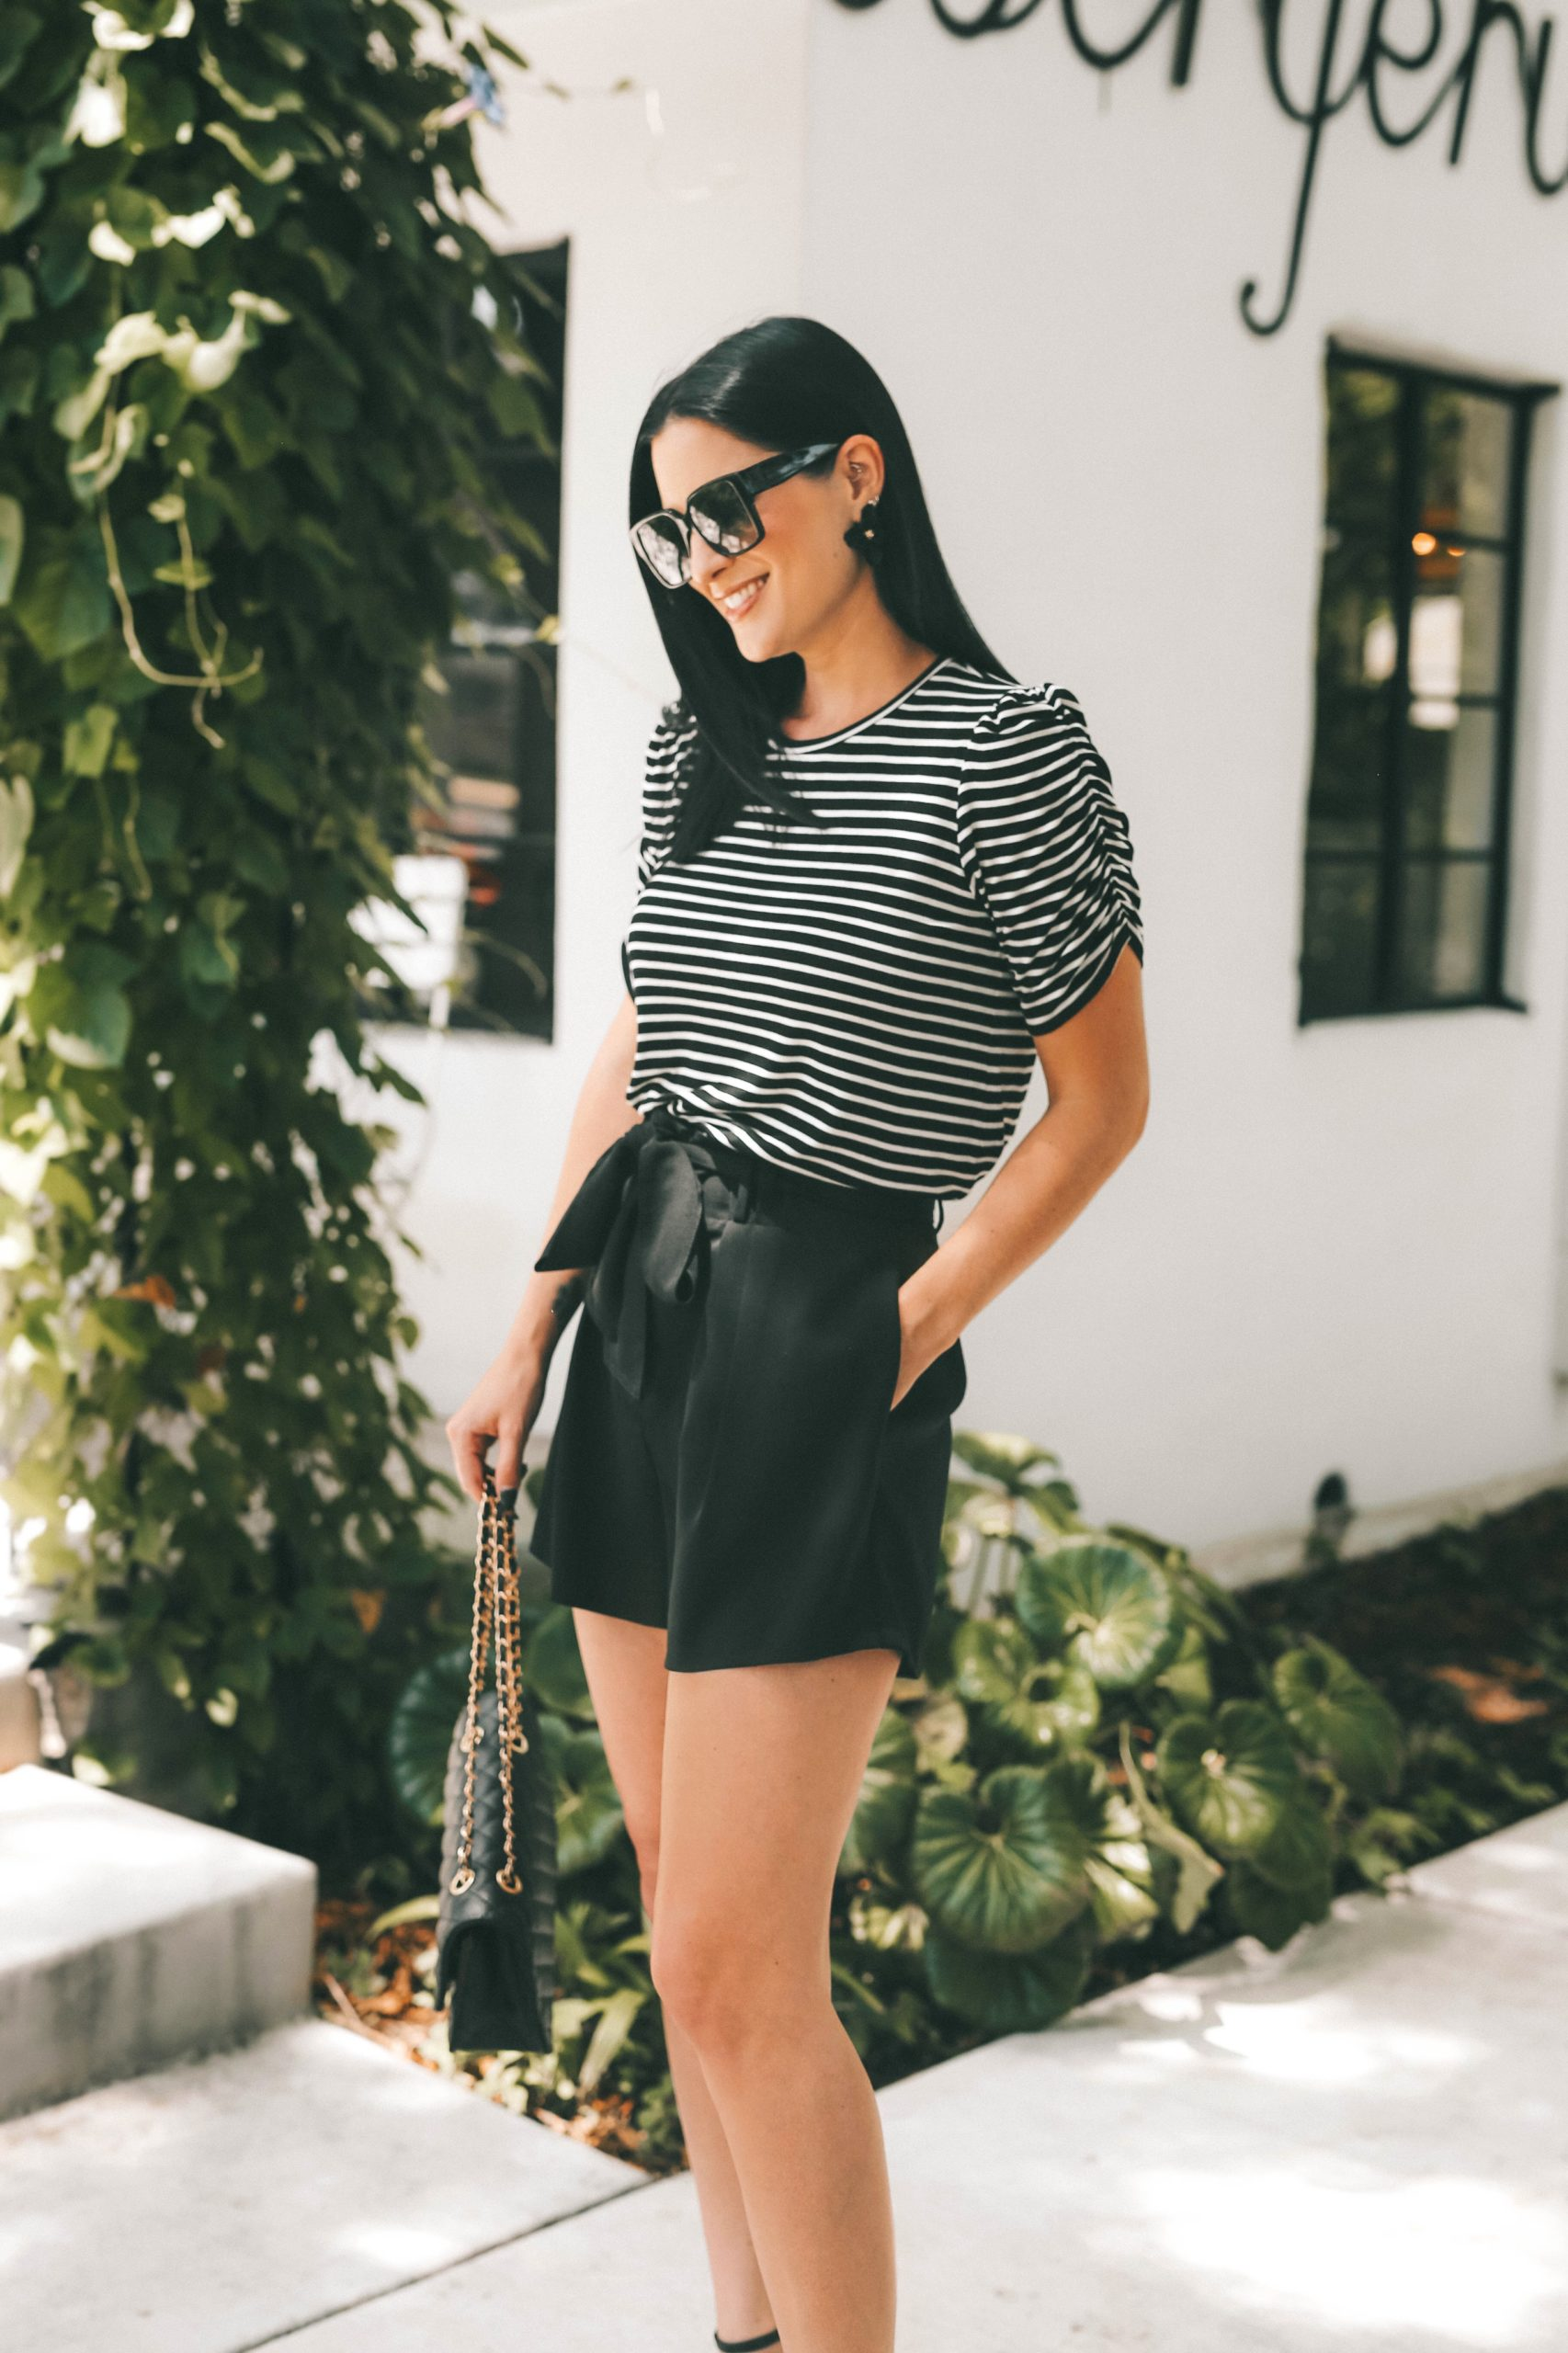 Gibson Look Road Trip by popular Austin fashion blog, Dressed to Kill: image of a woman wearing a pair of black paper bag shorts and a black and white stripe top.